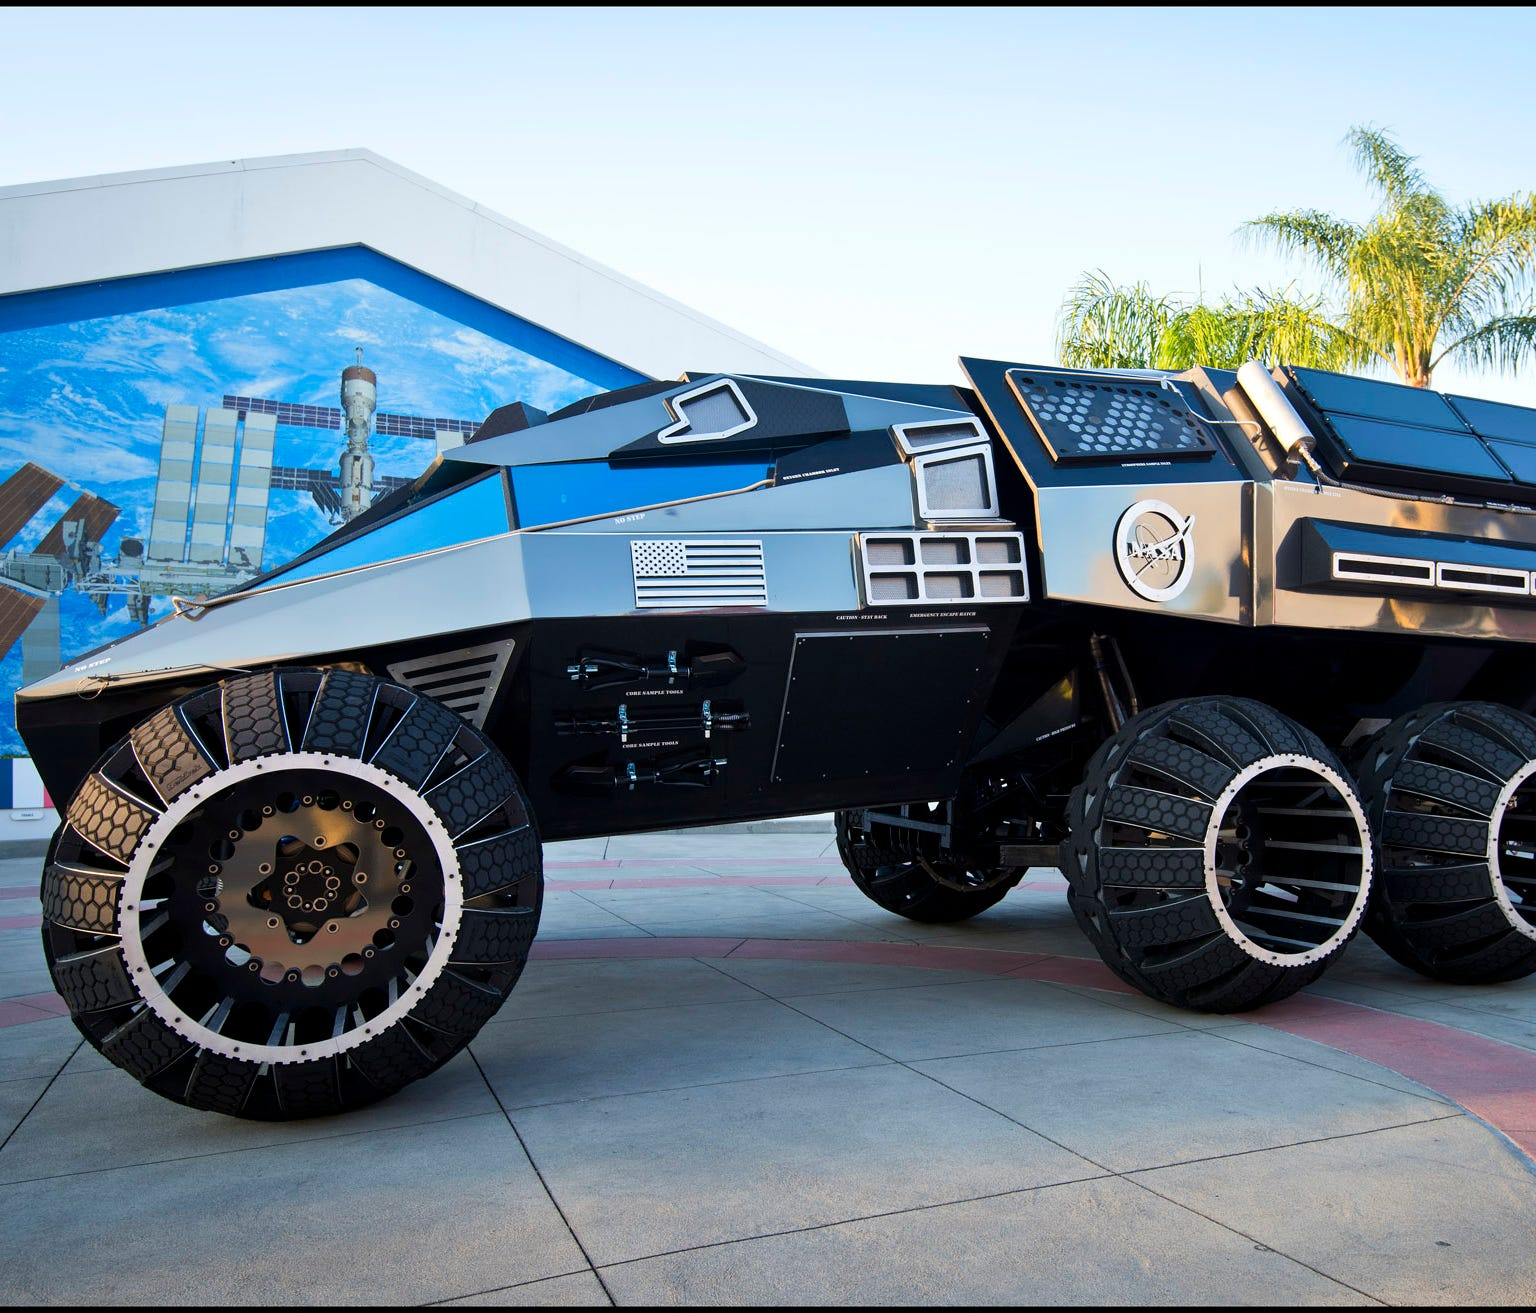 The Mars Rover concept vehicle was commissioned by Kennedy Space Center Visitor Complex as an educational tool and to inspire the public about the future of space exploration and interplanetary travel.